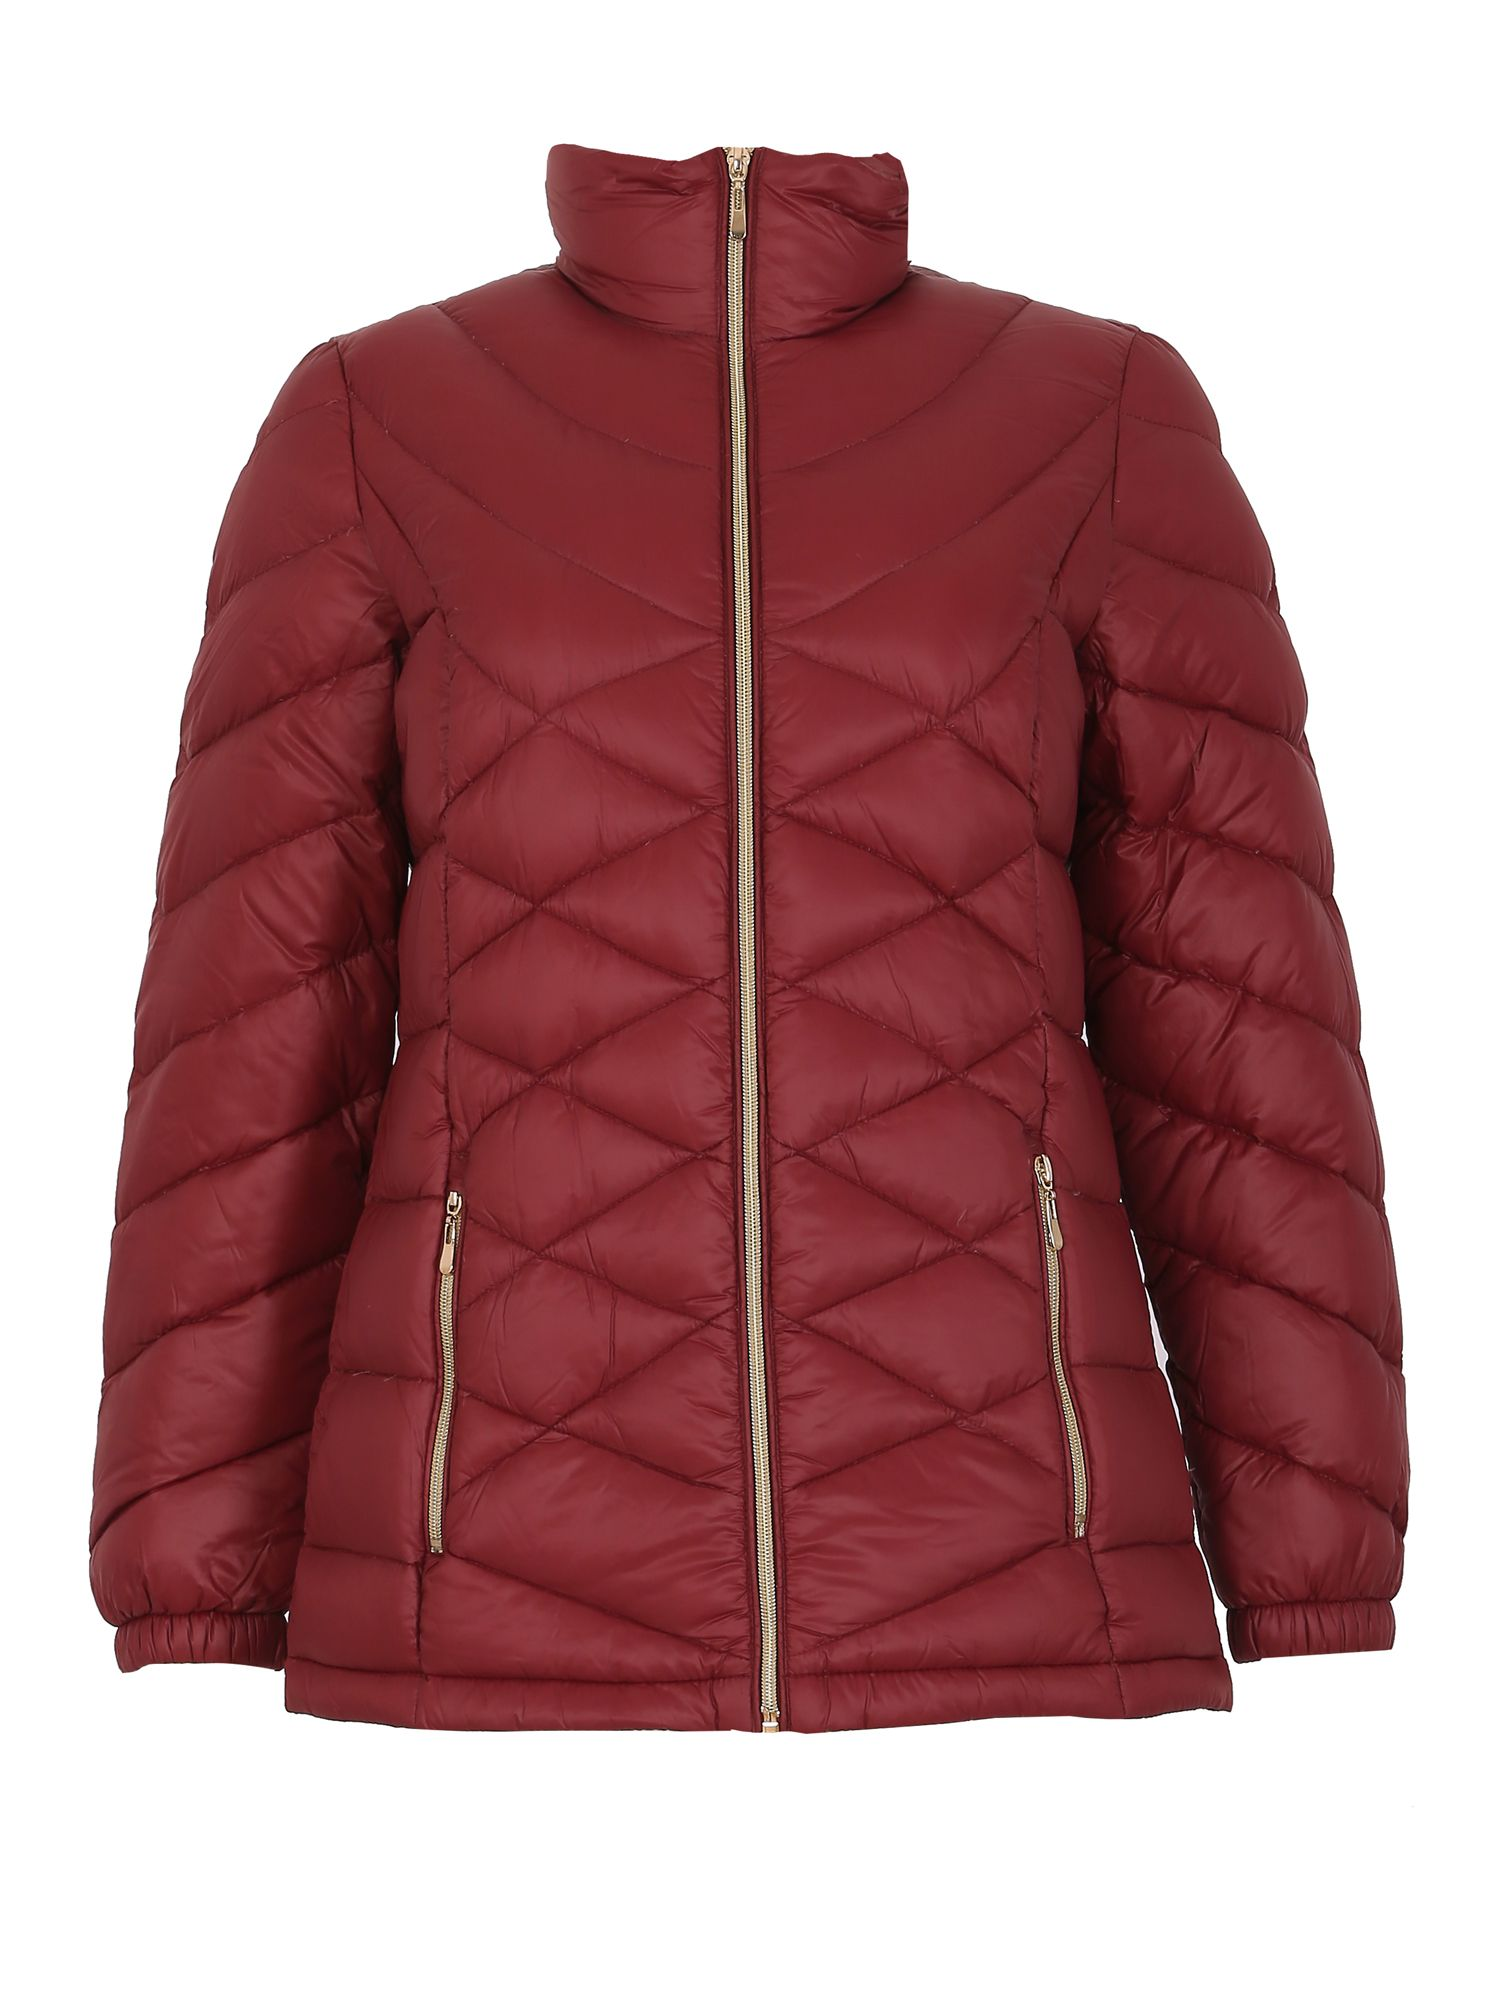 David Barry David Barry Lightweight Down & Feather Hooded Jacket, Red